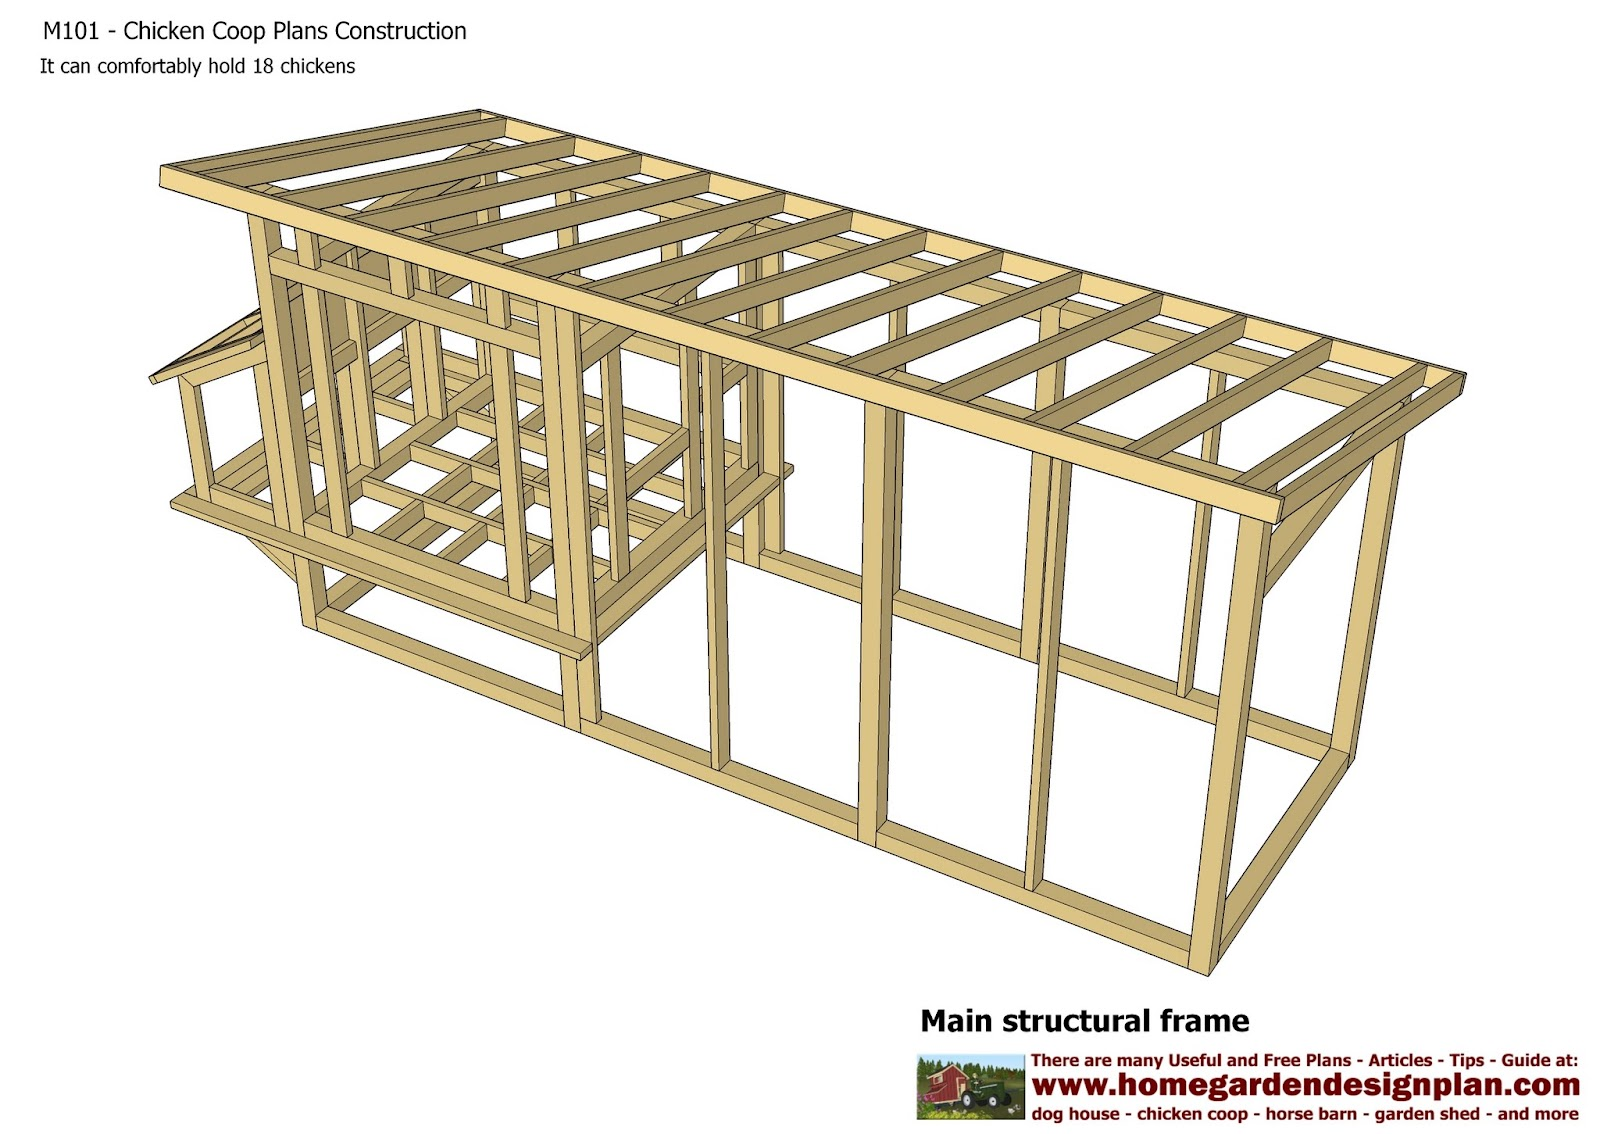 Gellencoop plans for chicken coop construction for Free coop plans